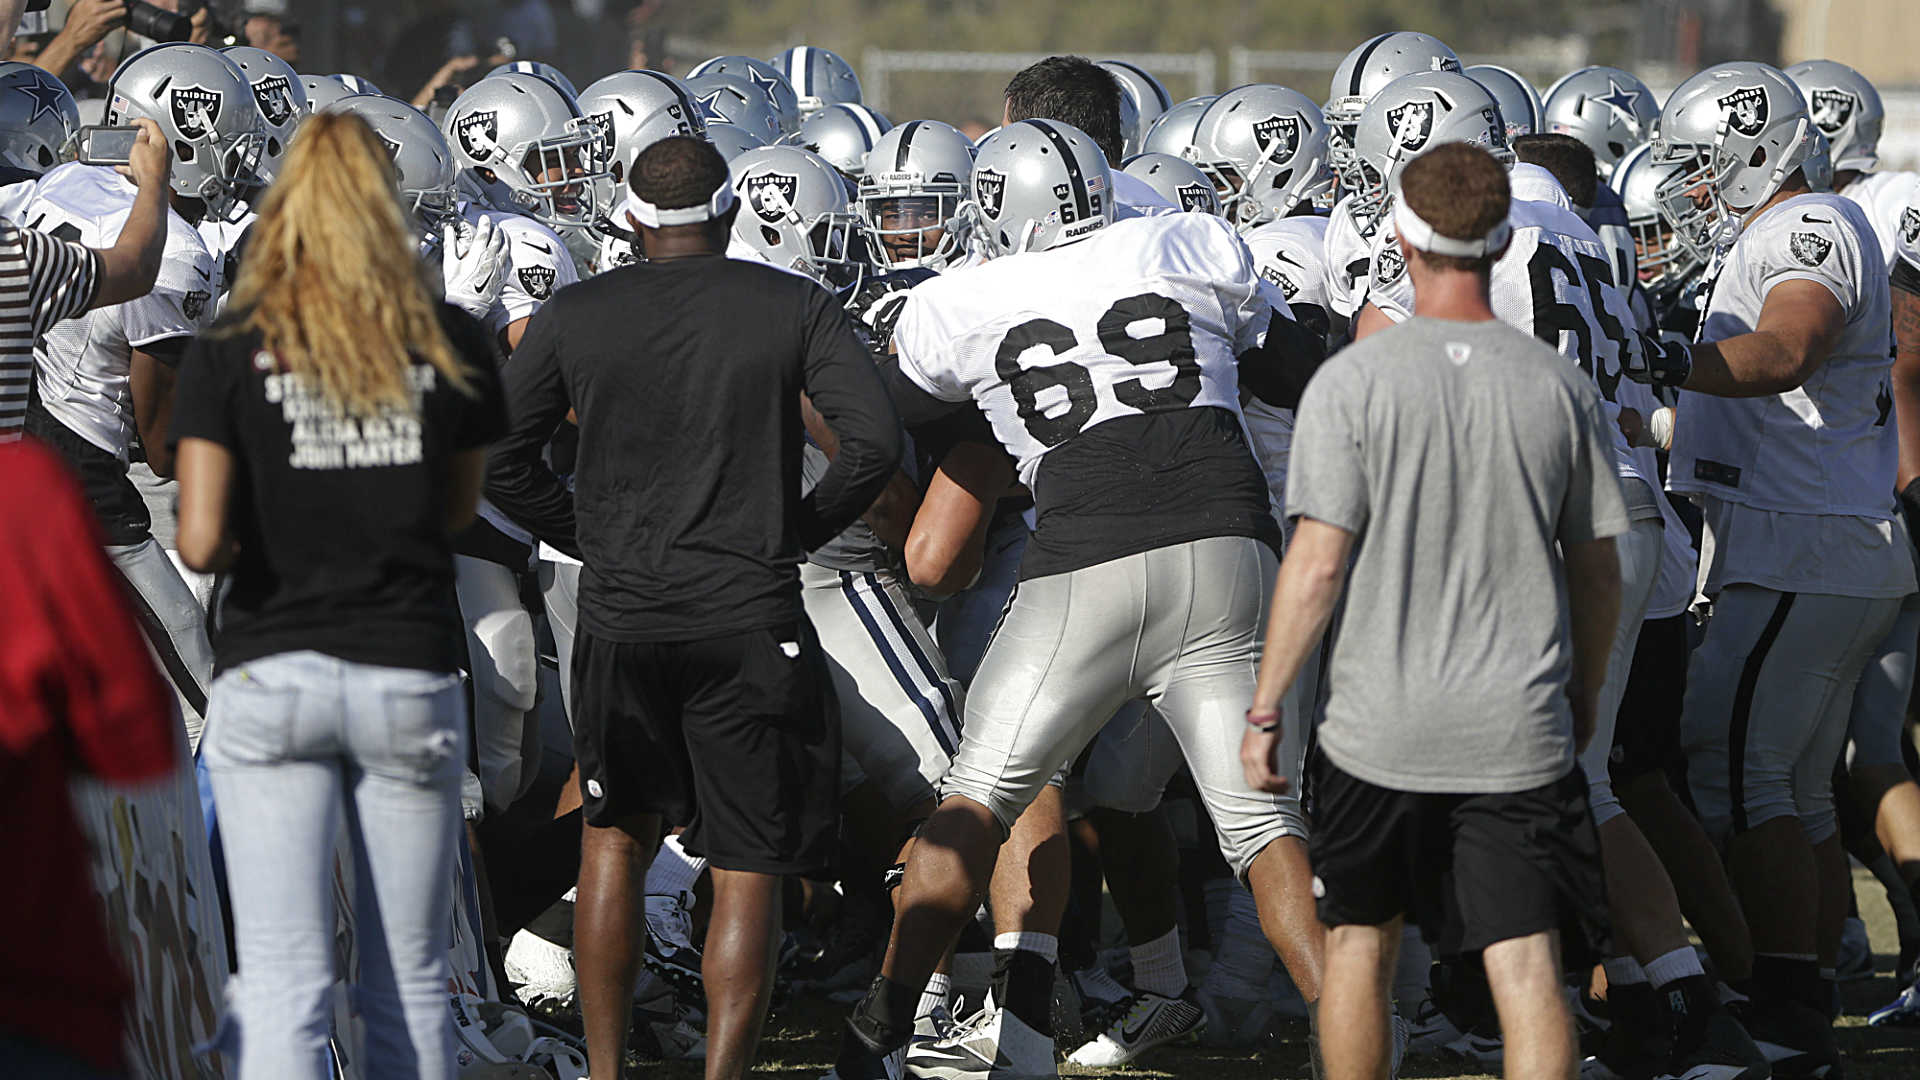 Cowboys-Raiders-brawl-081214-AP-FTR.jpg